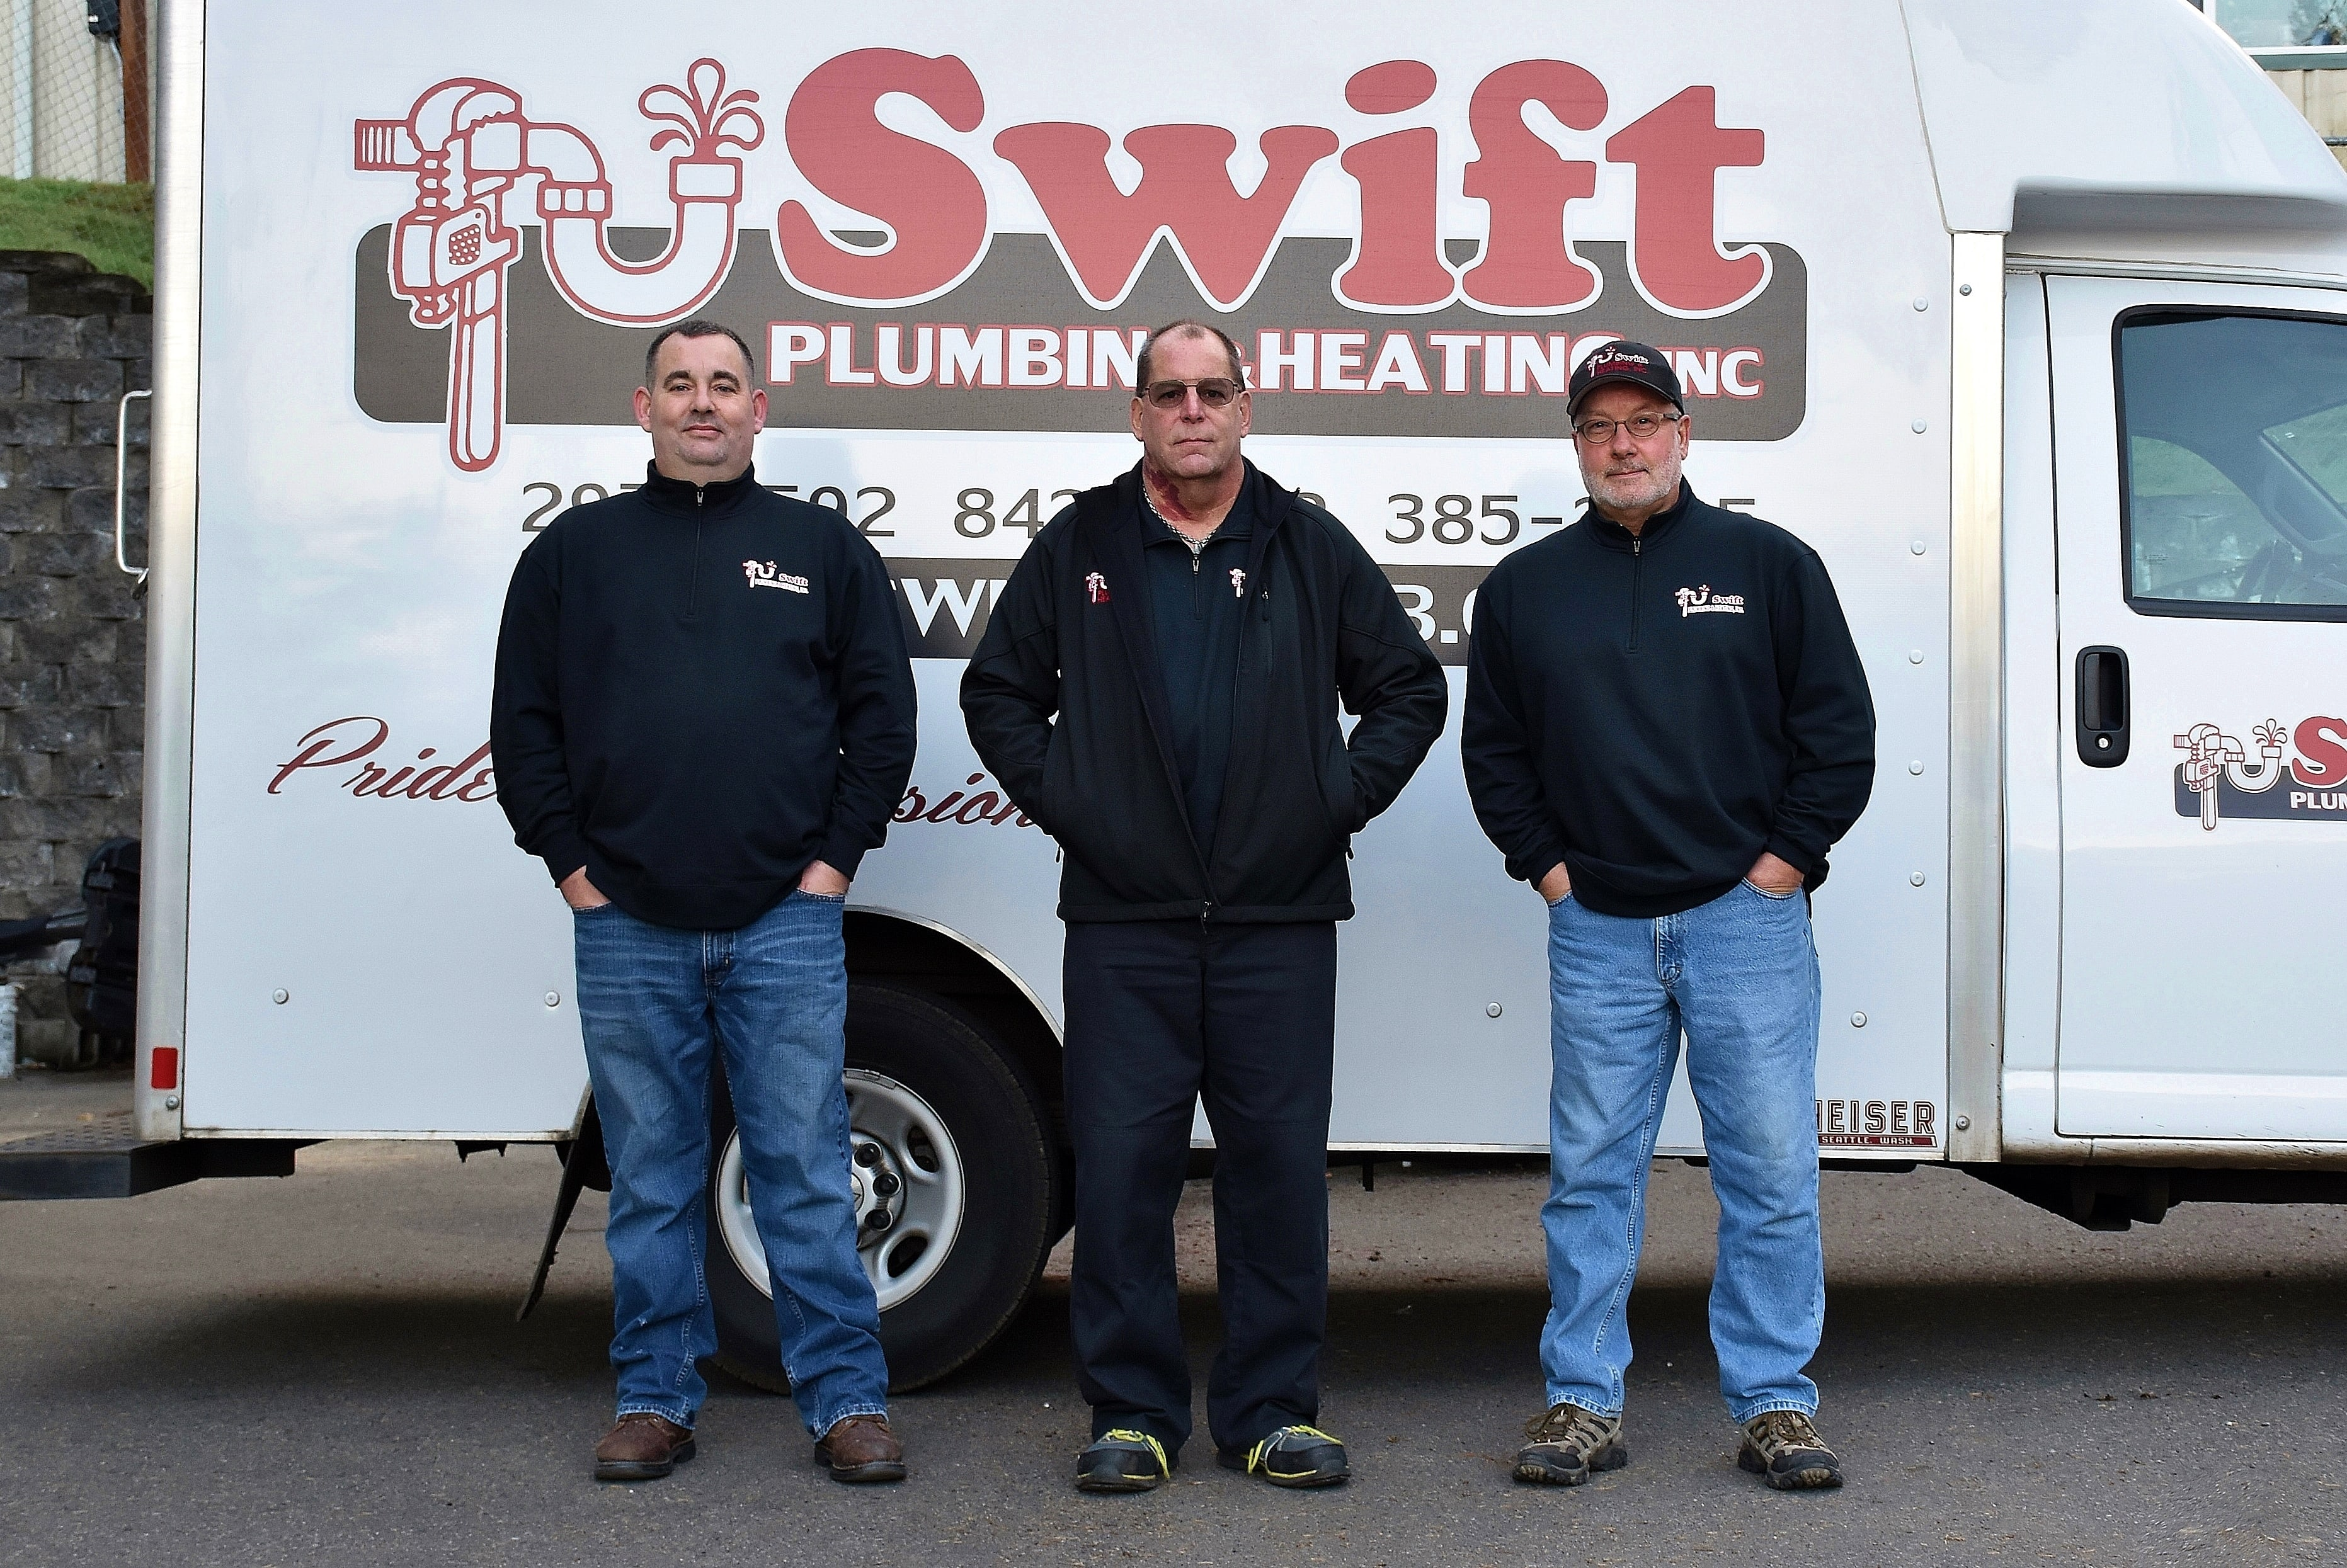 Need to be a Plumber for your drain or sewer repair service in Silverdale WA? - Call us.